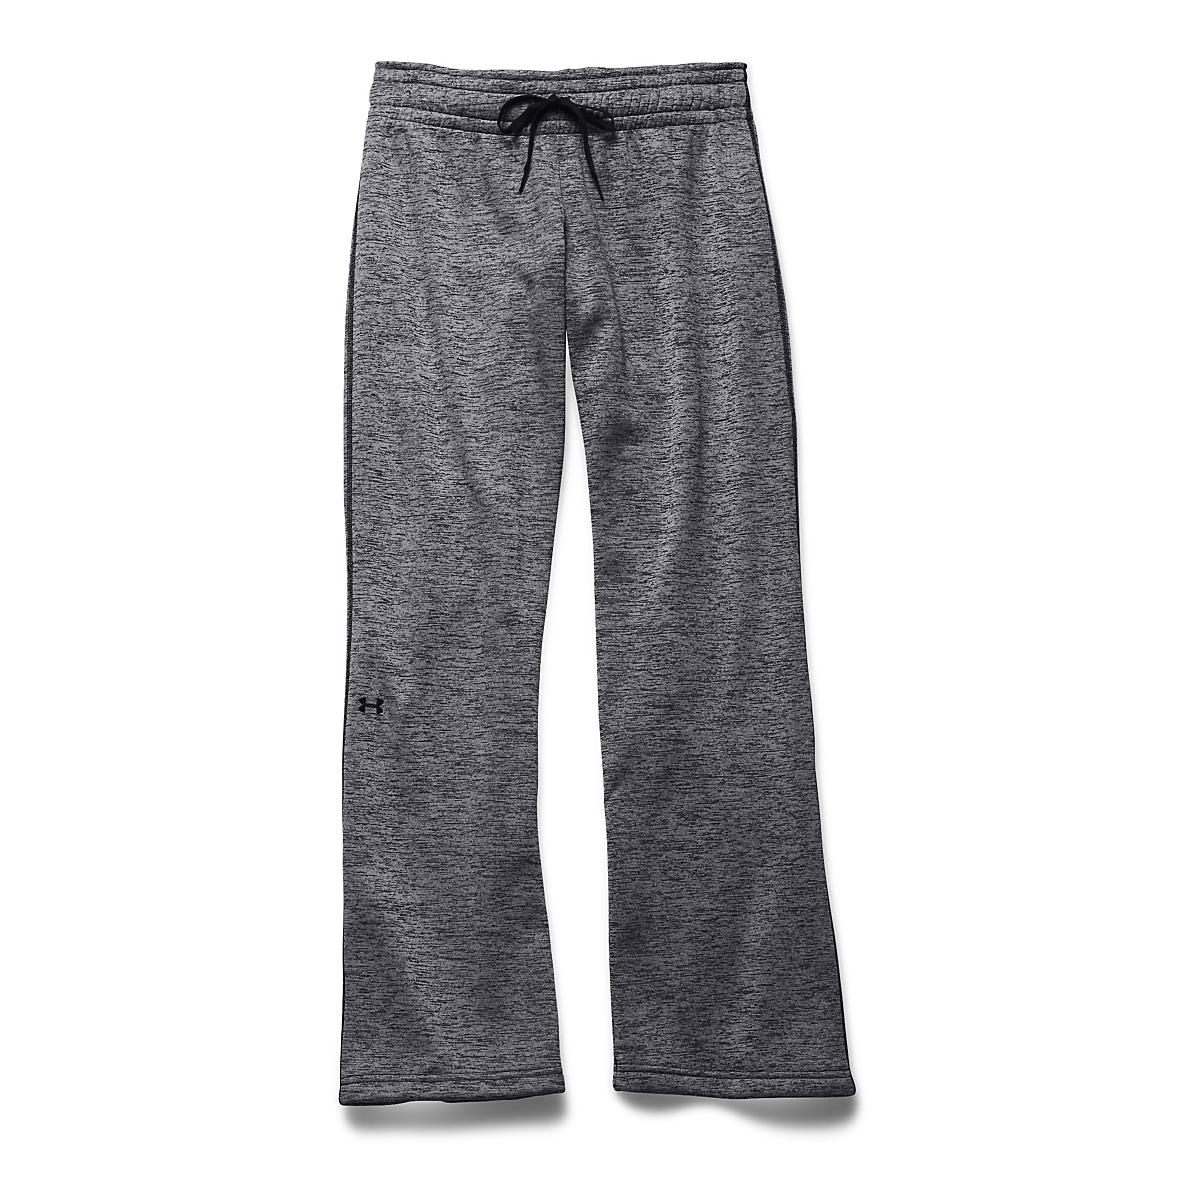 Women's Under Armour�Lightweight Armour Fleece Twist Pant